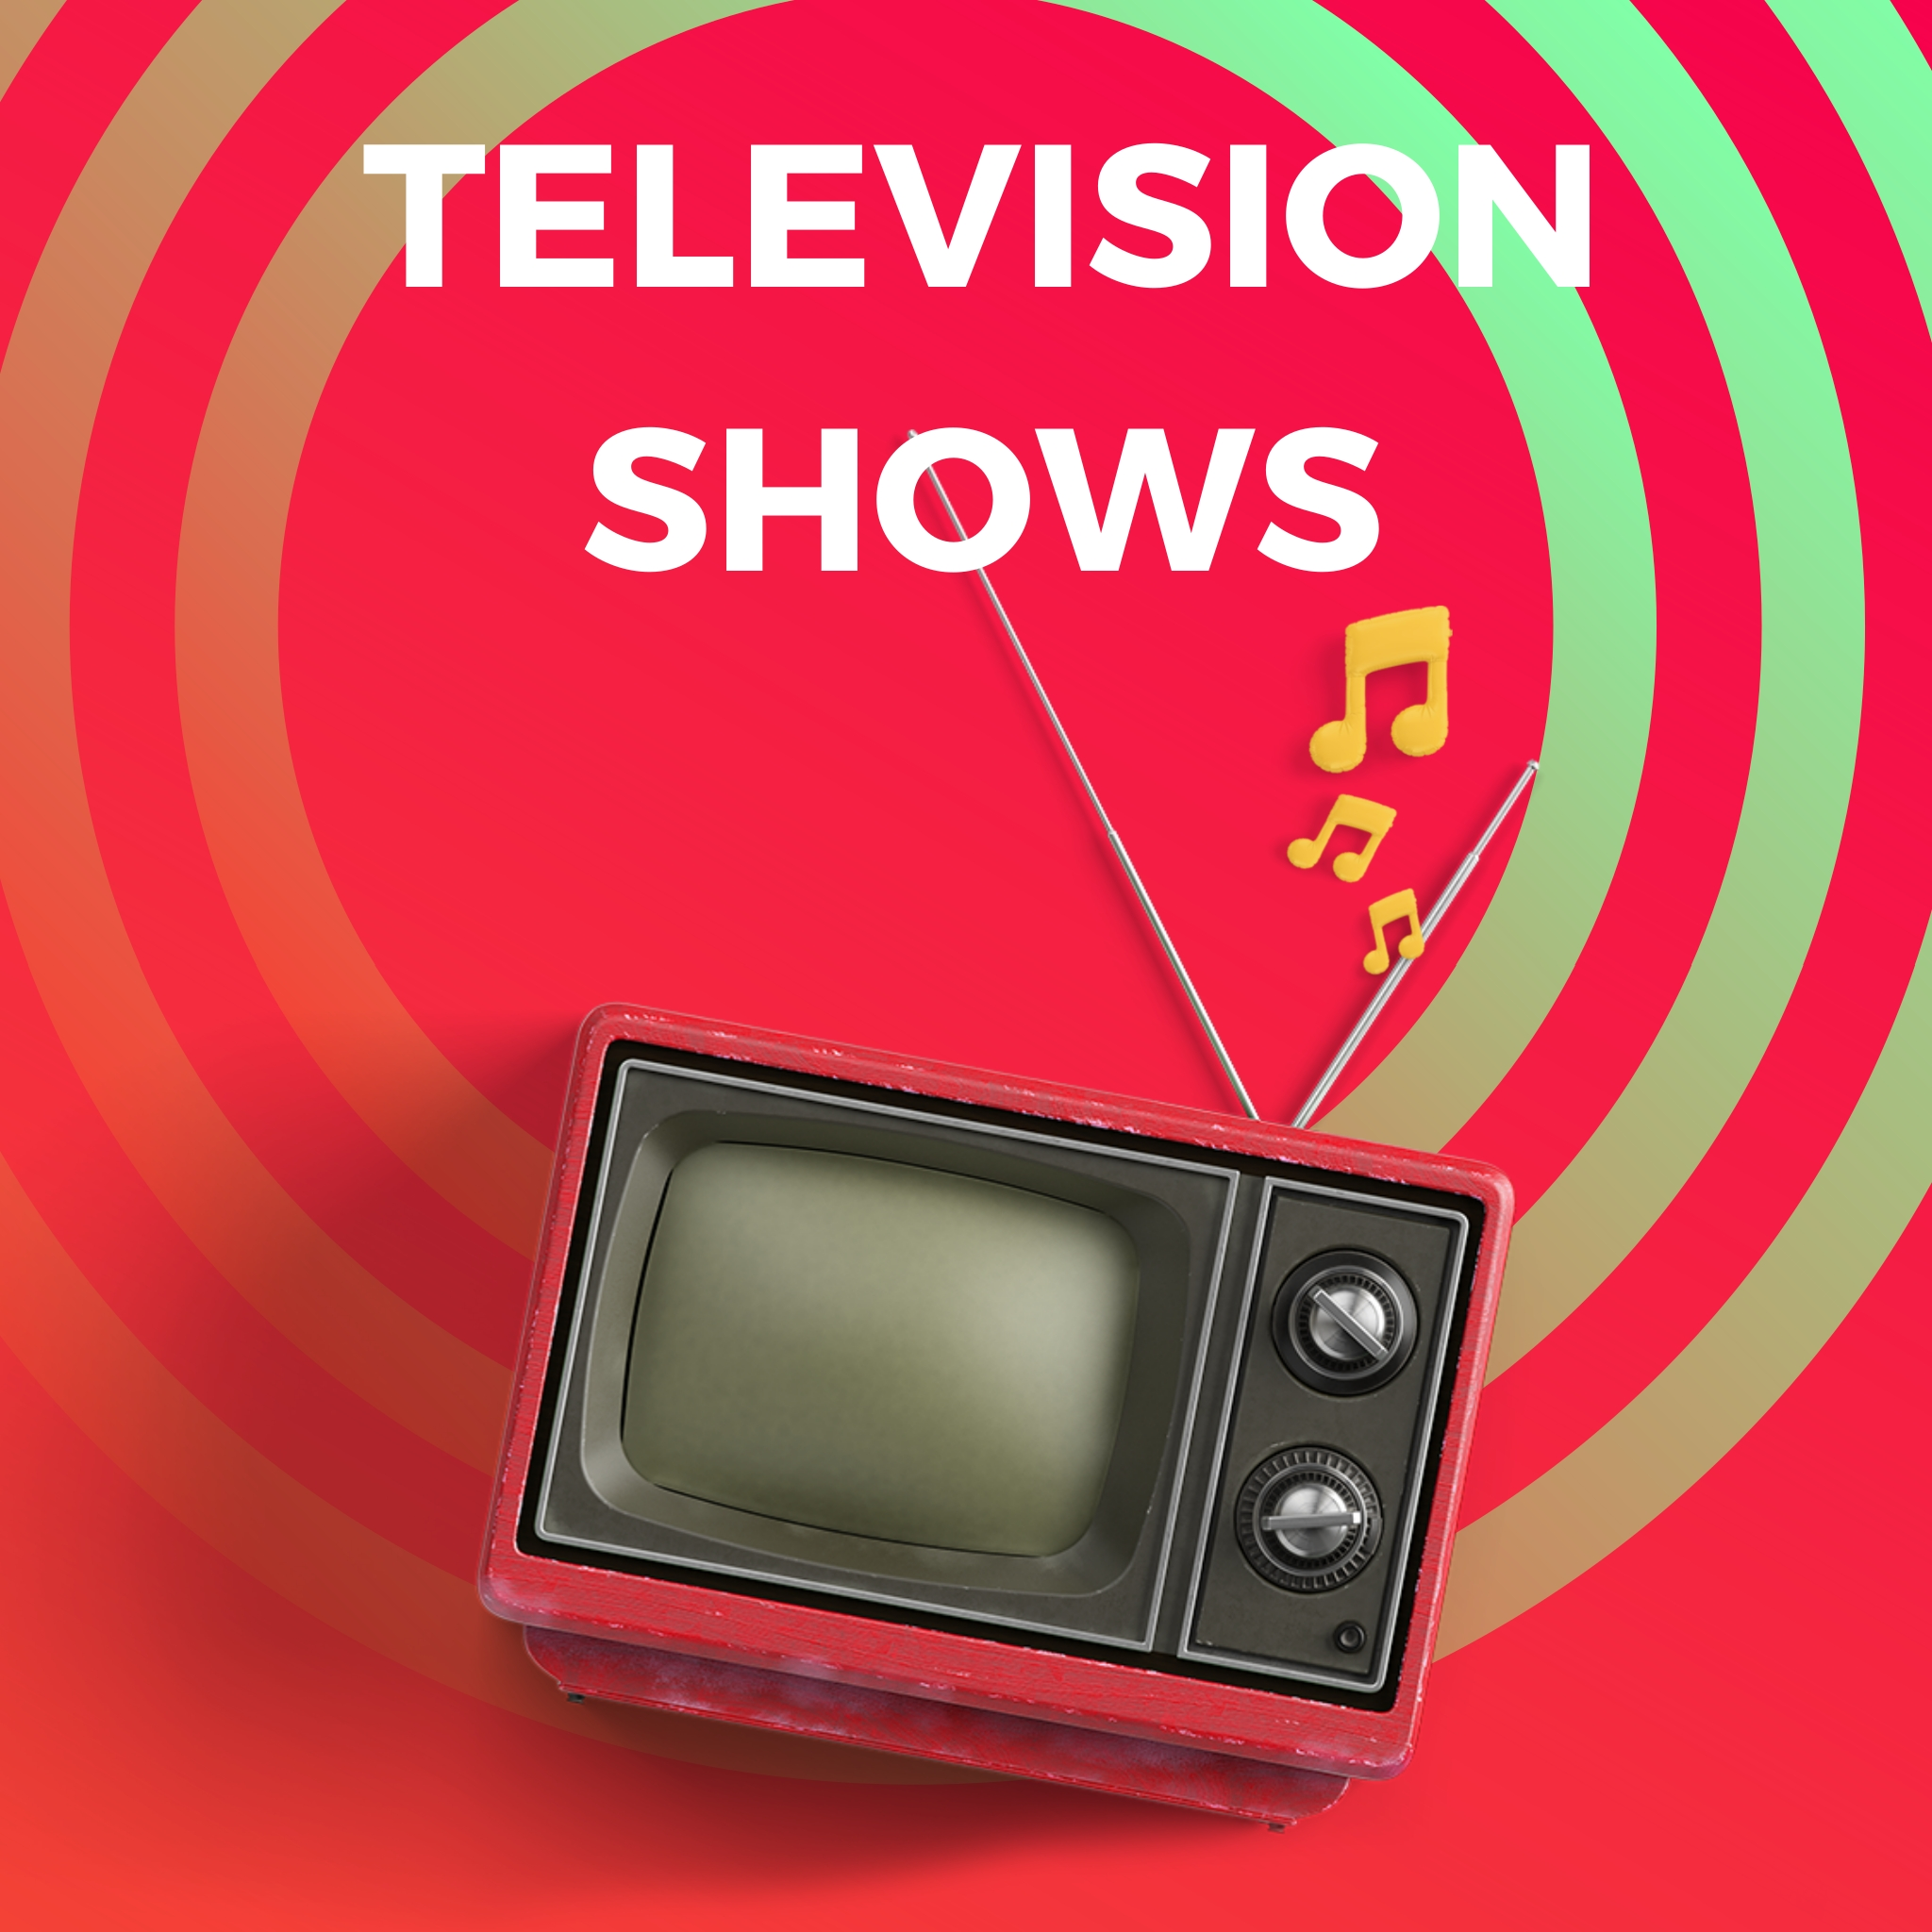 essay television show Find out the negative effects of watching too much television that you should  always keep in mind before tuning into your favorite tv shows.